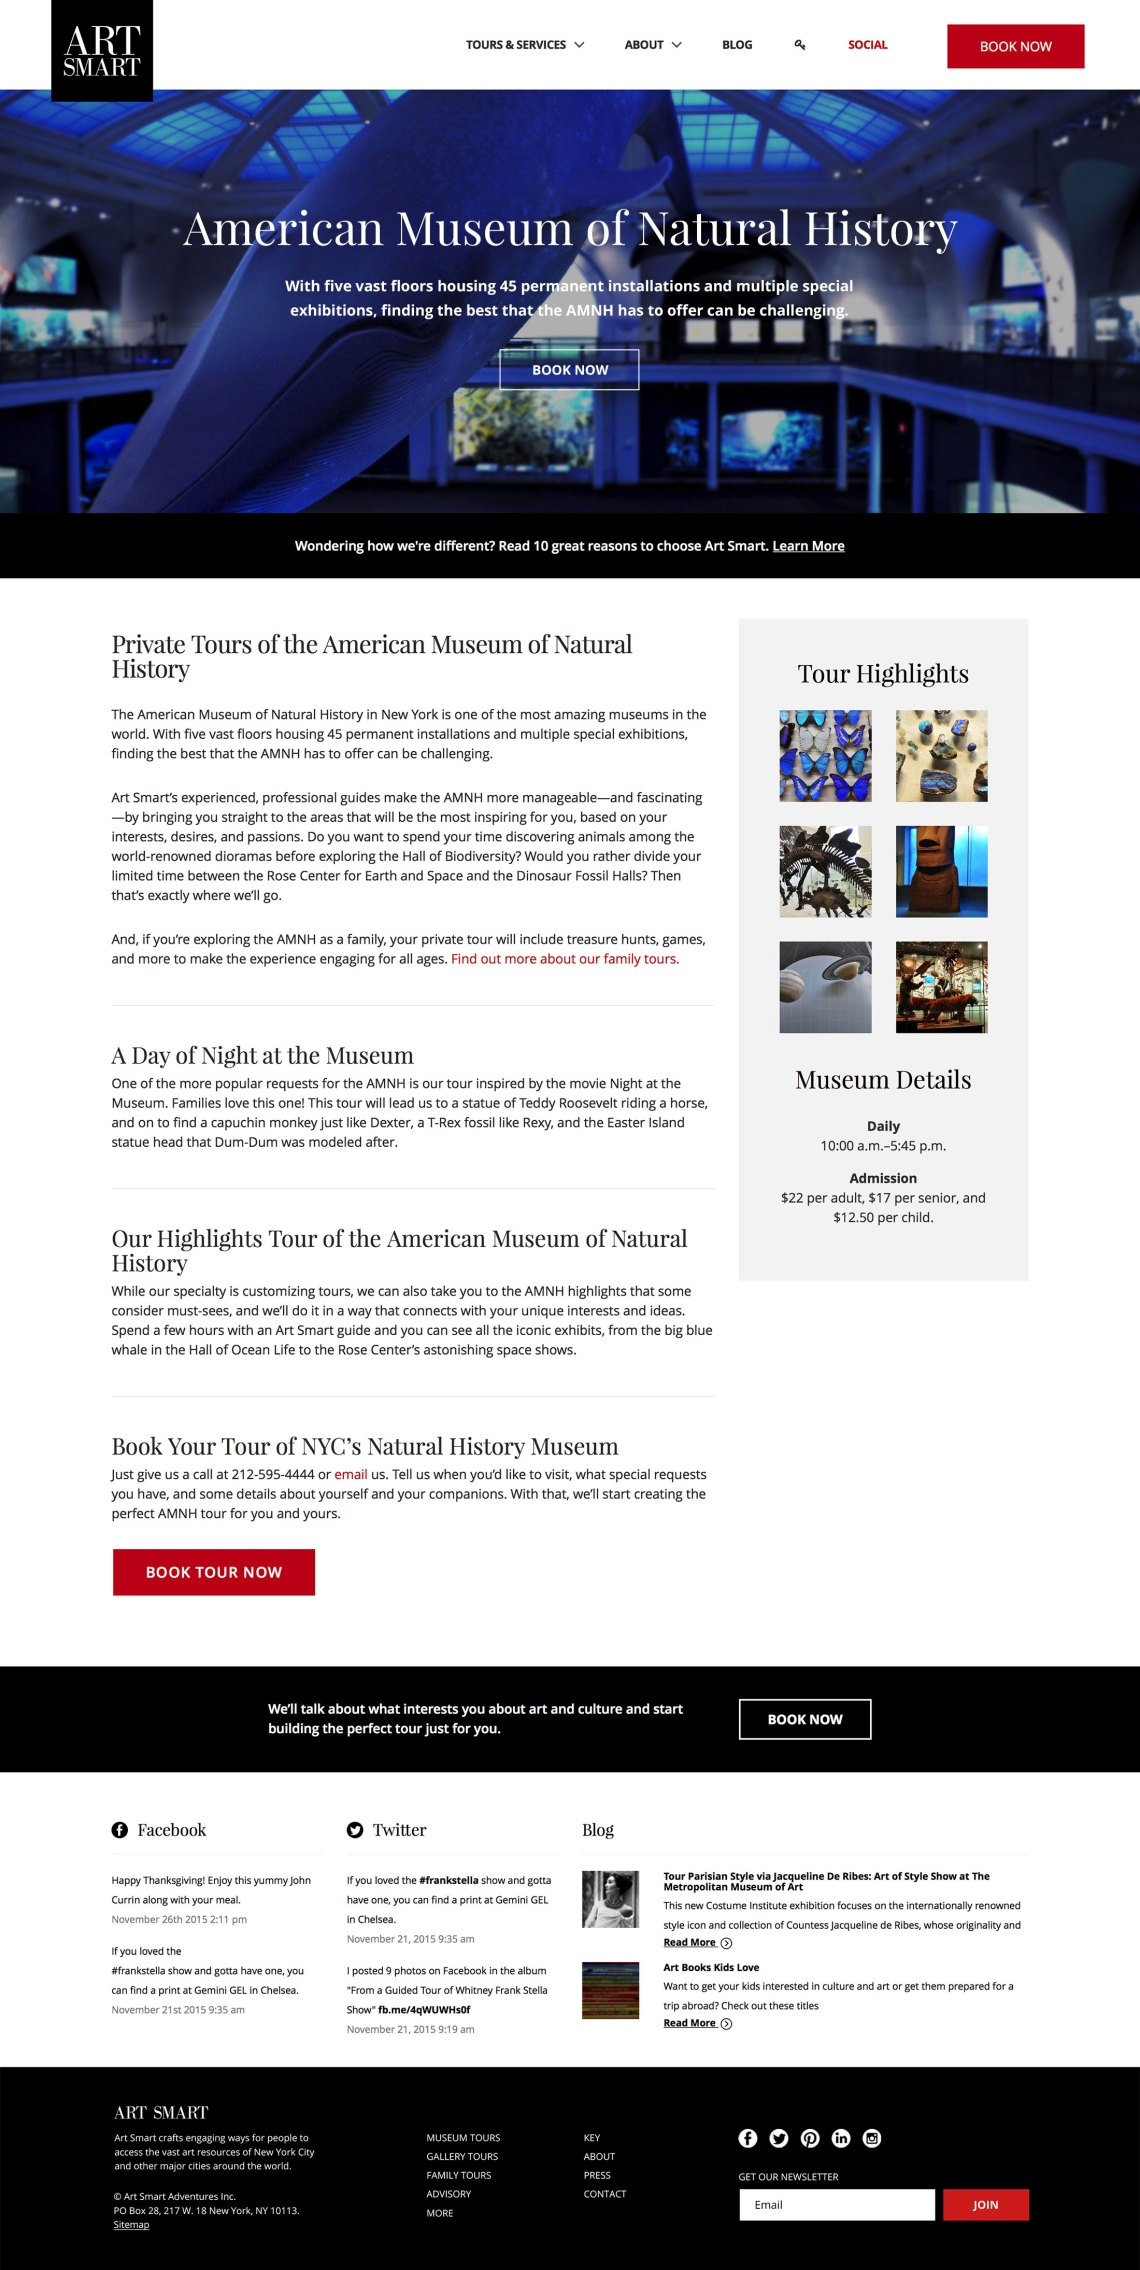 new york museum tours - web design for an art touring company